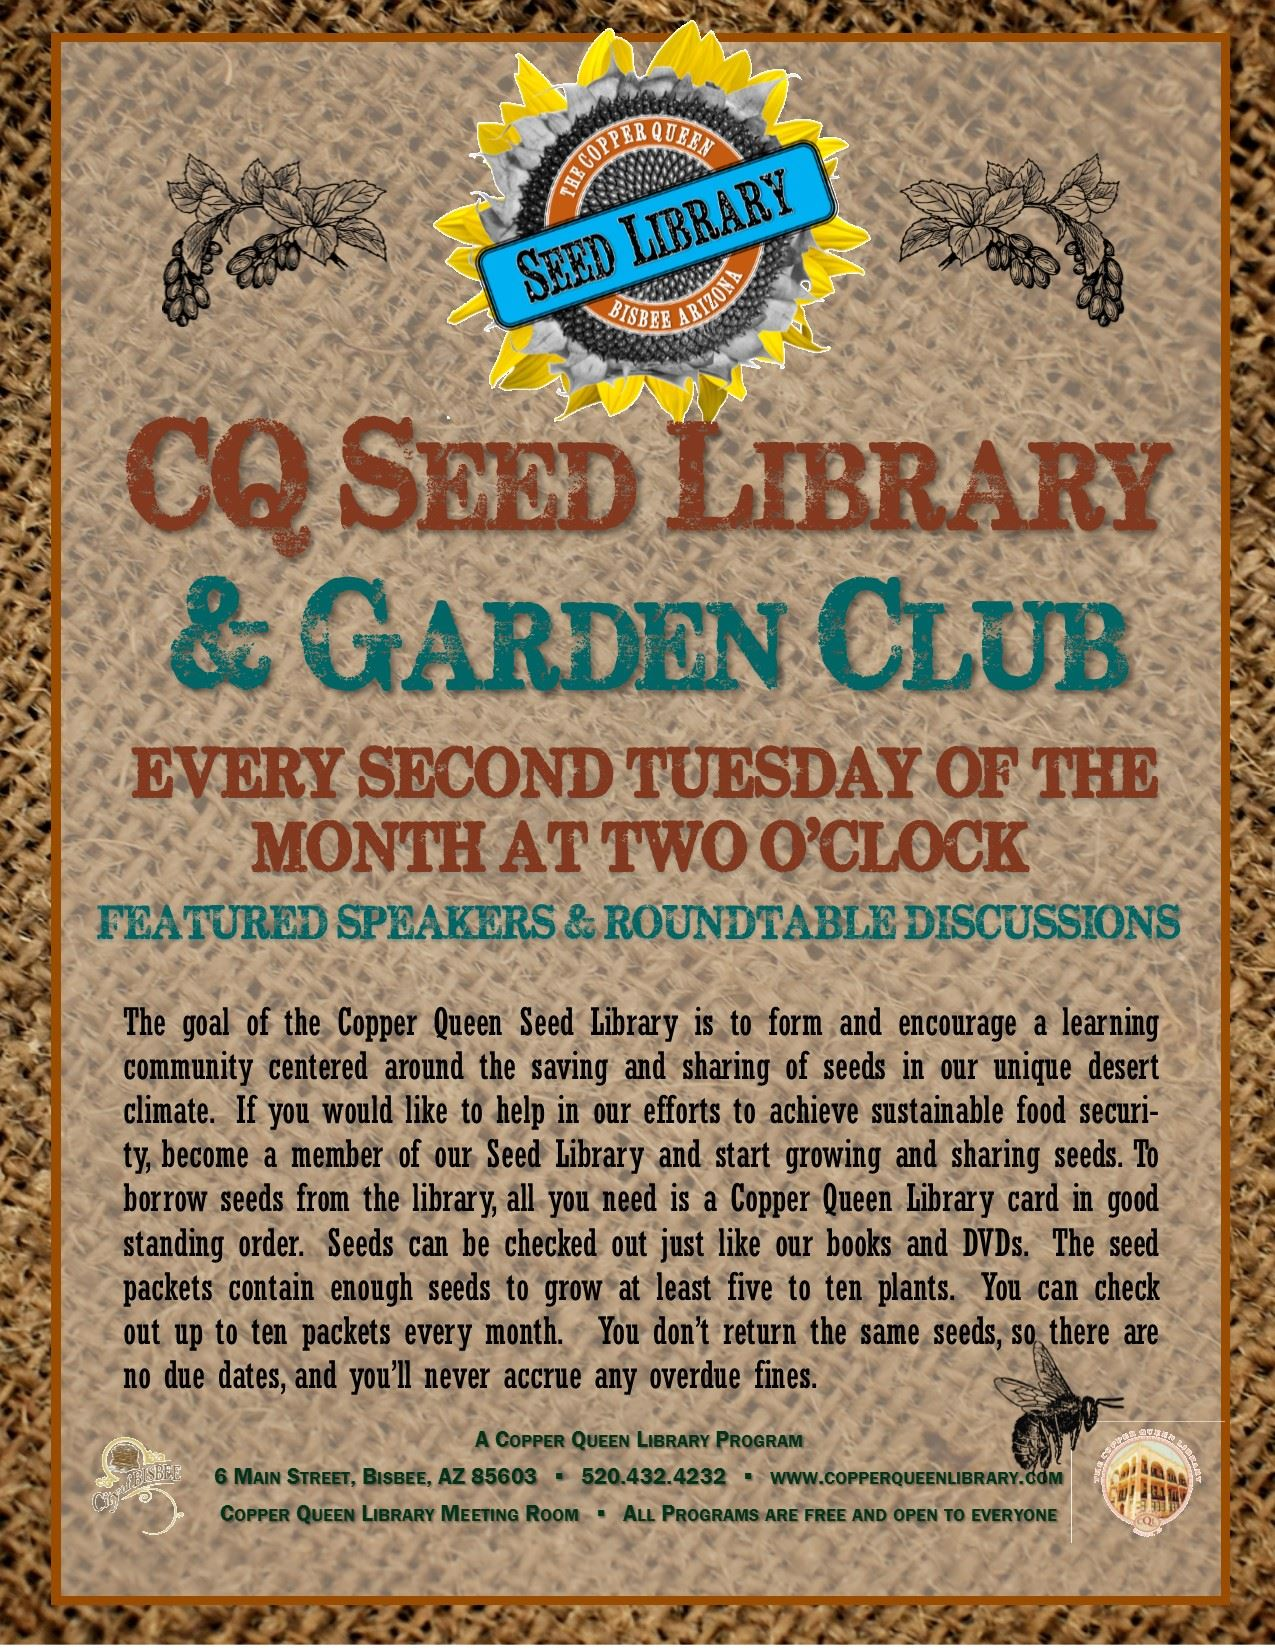 CQL SEED LIBRARY GARDEN CLUB 3.6.18 POSTER 8.5x11